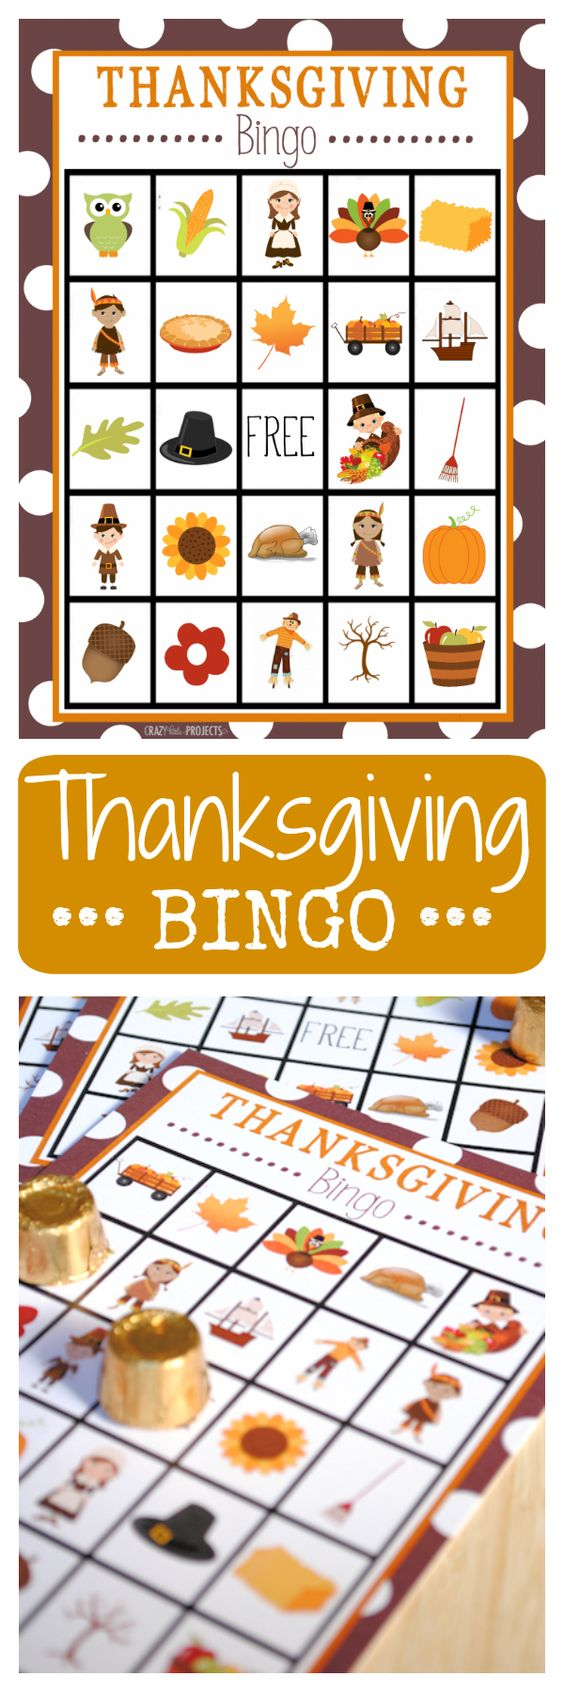 Free Printable Thanksgiving Bingo cards for kids. Print them out for a Thanksgiving party or to play before dinner on the big day.: